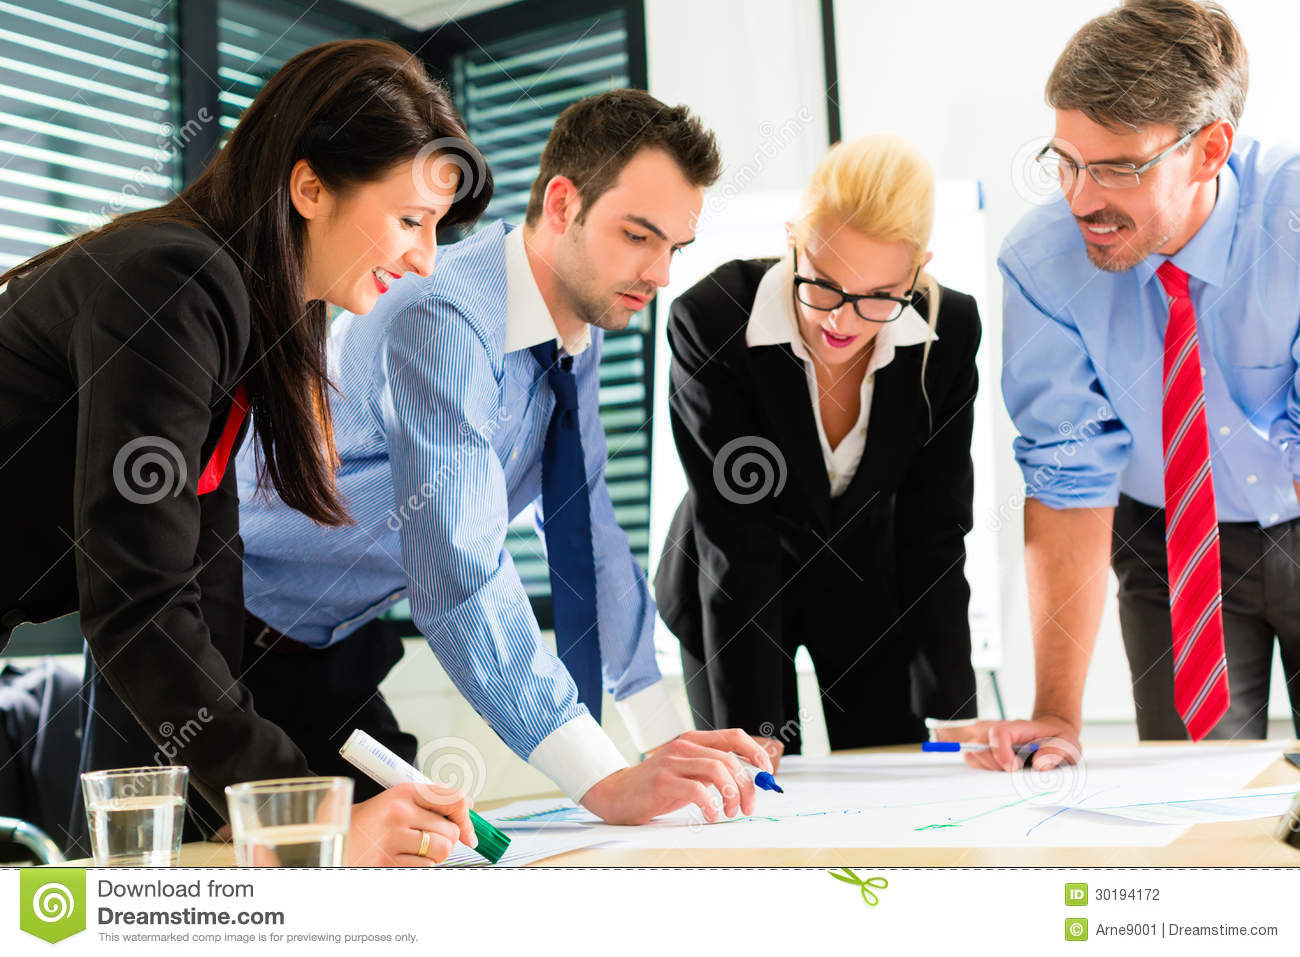 Writing a Business Plan: Management & Personnel Considerations